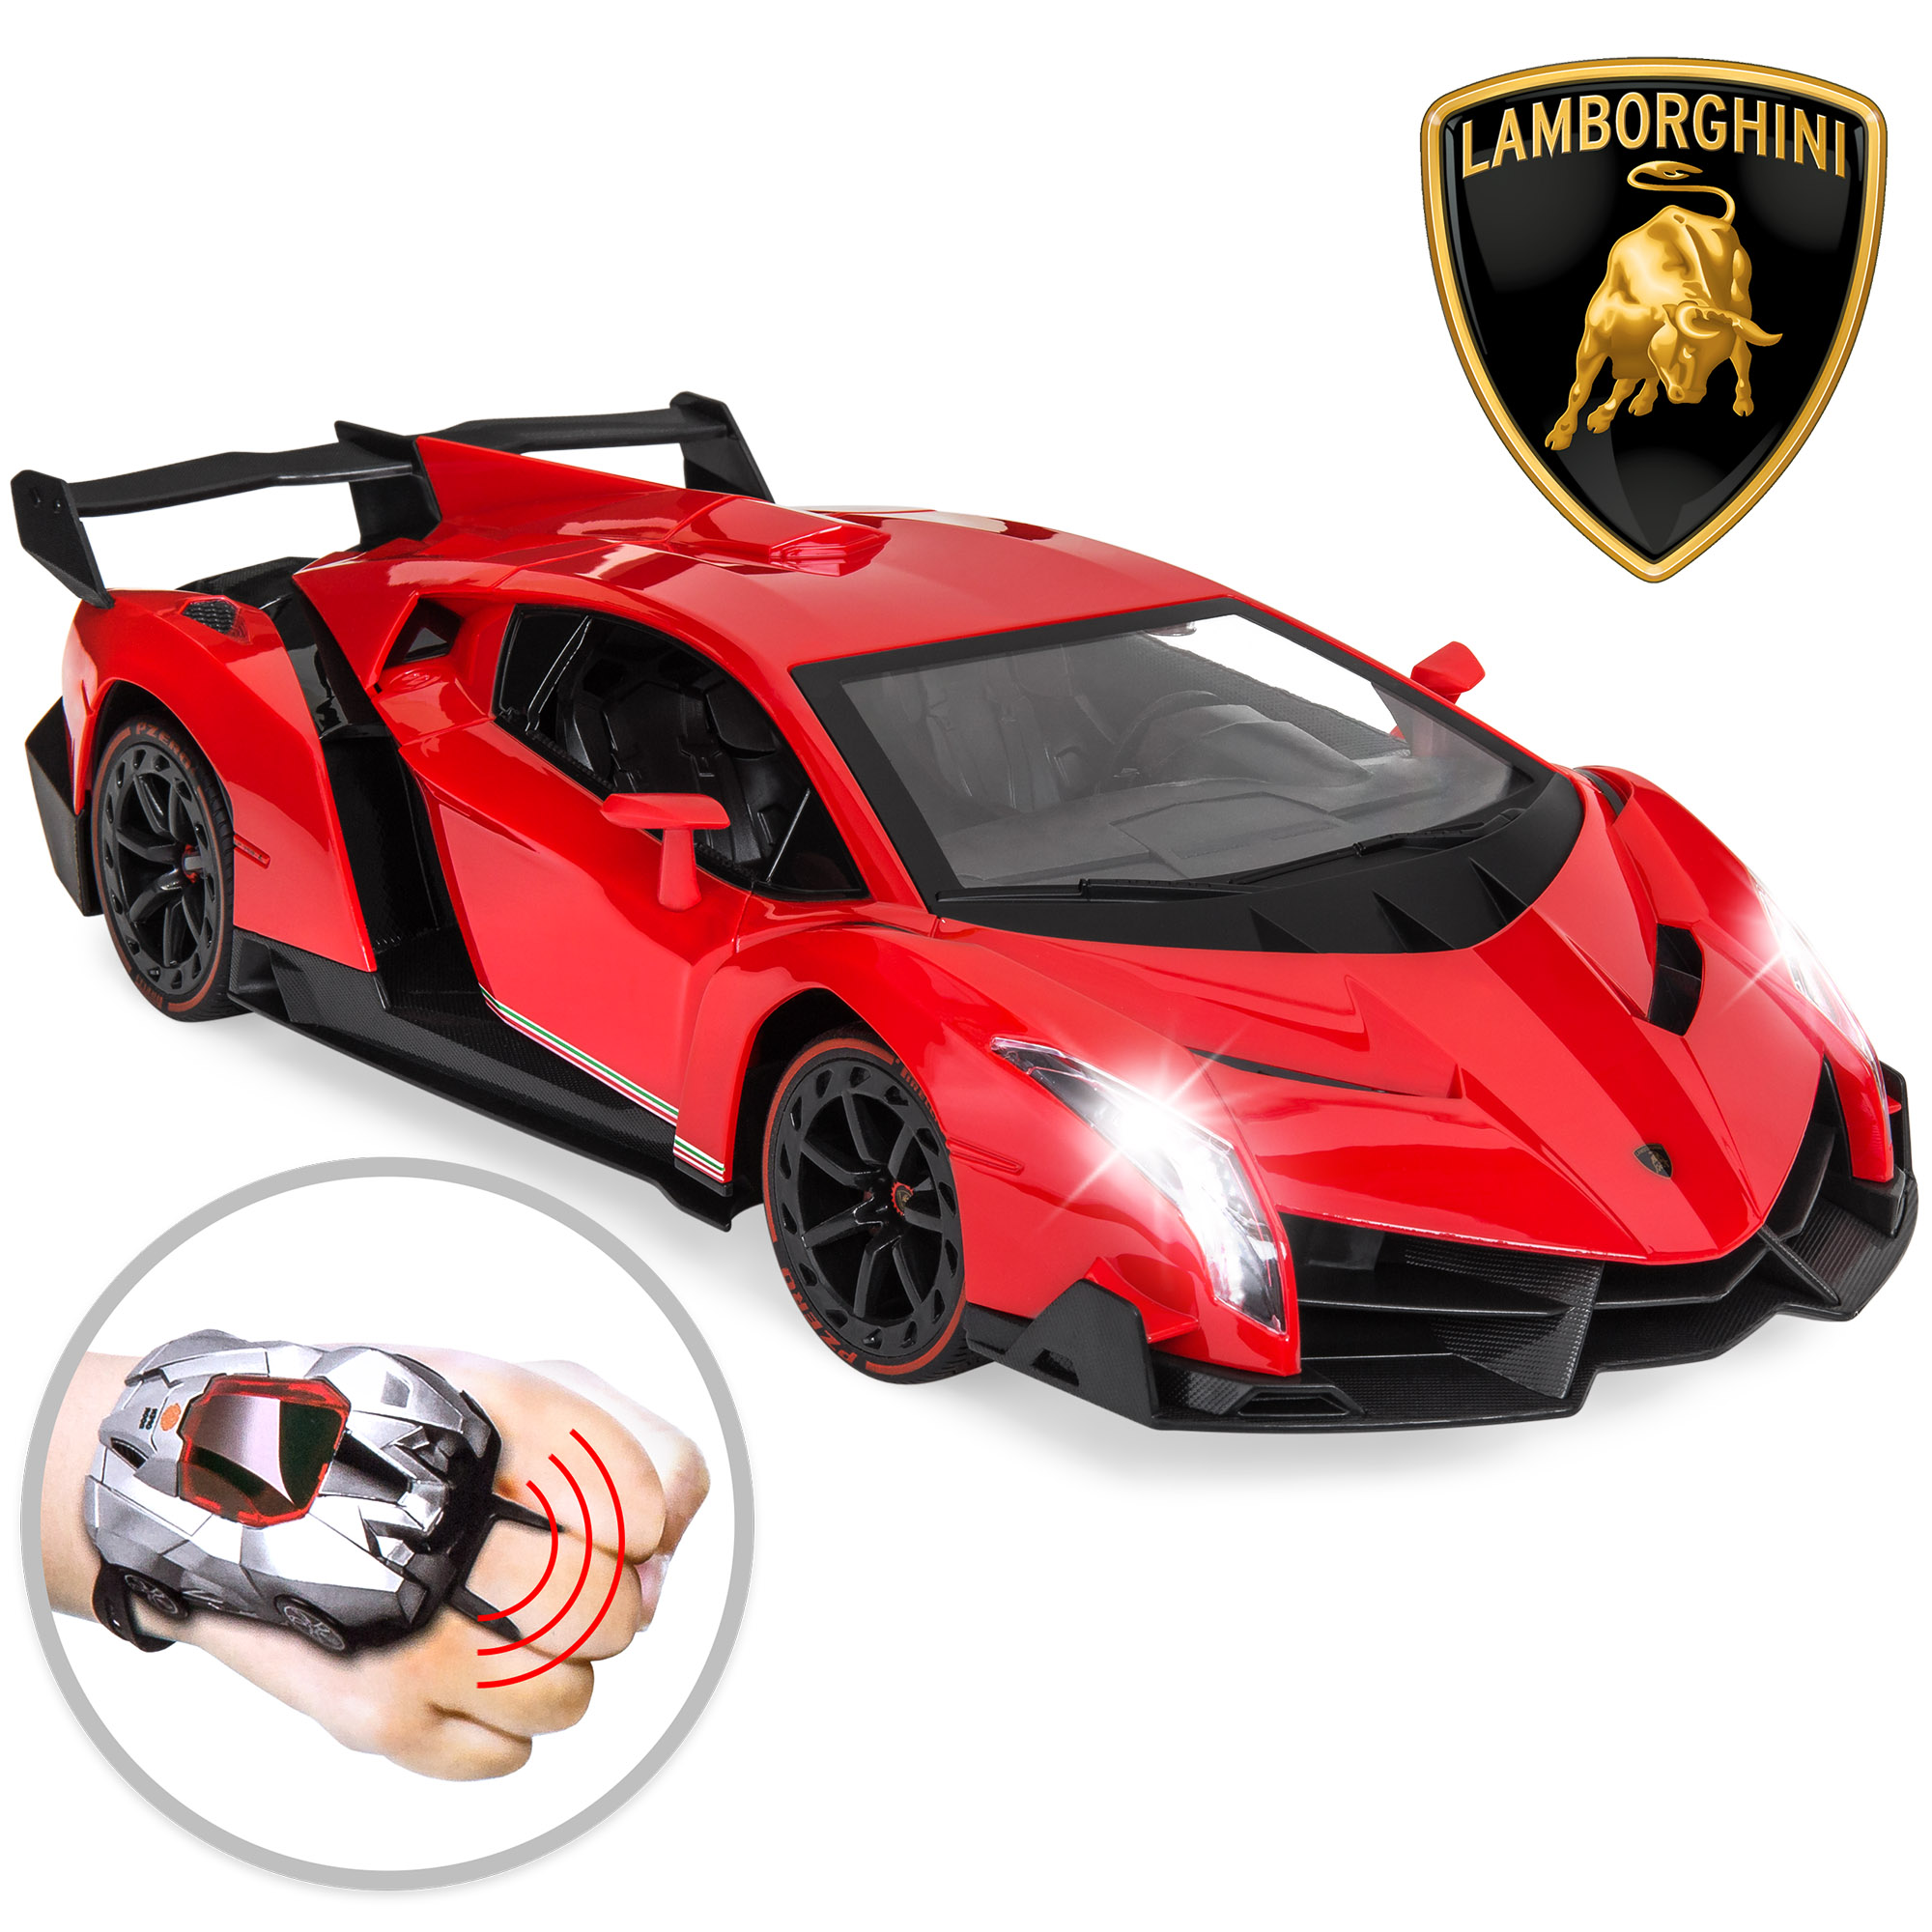 Best Choice Products 1/14 Scale RC Lamborghini Veneno Race Car w/ Wearable Controller and Gravity Control - Red